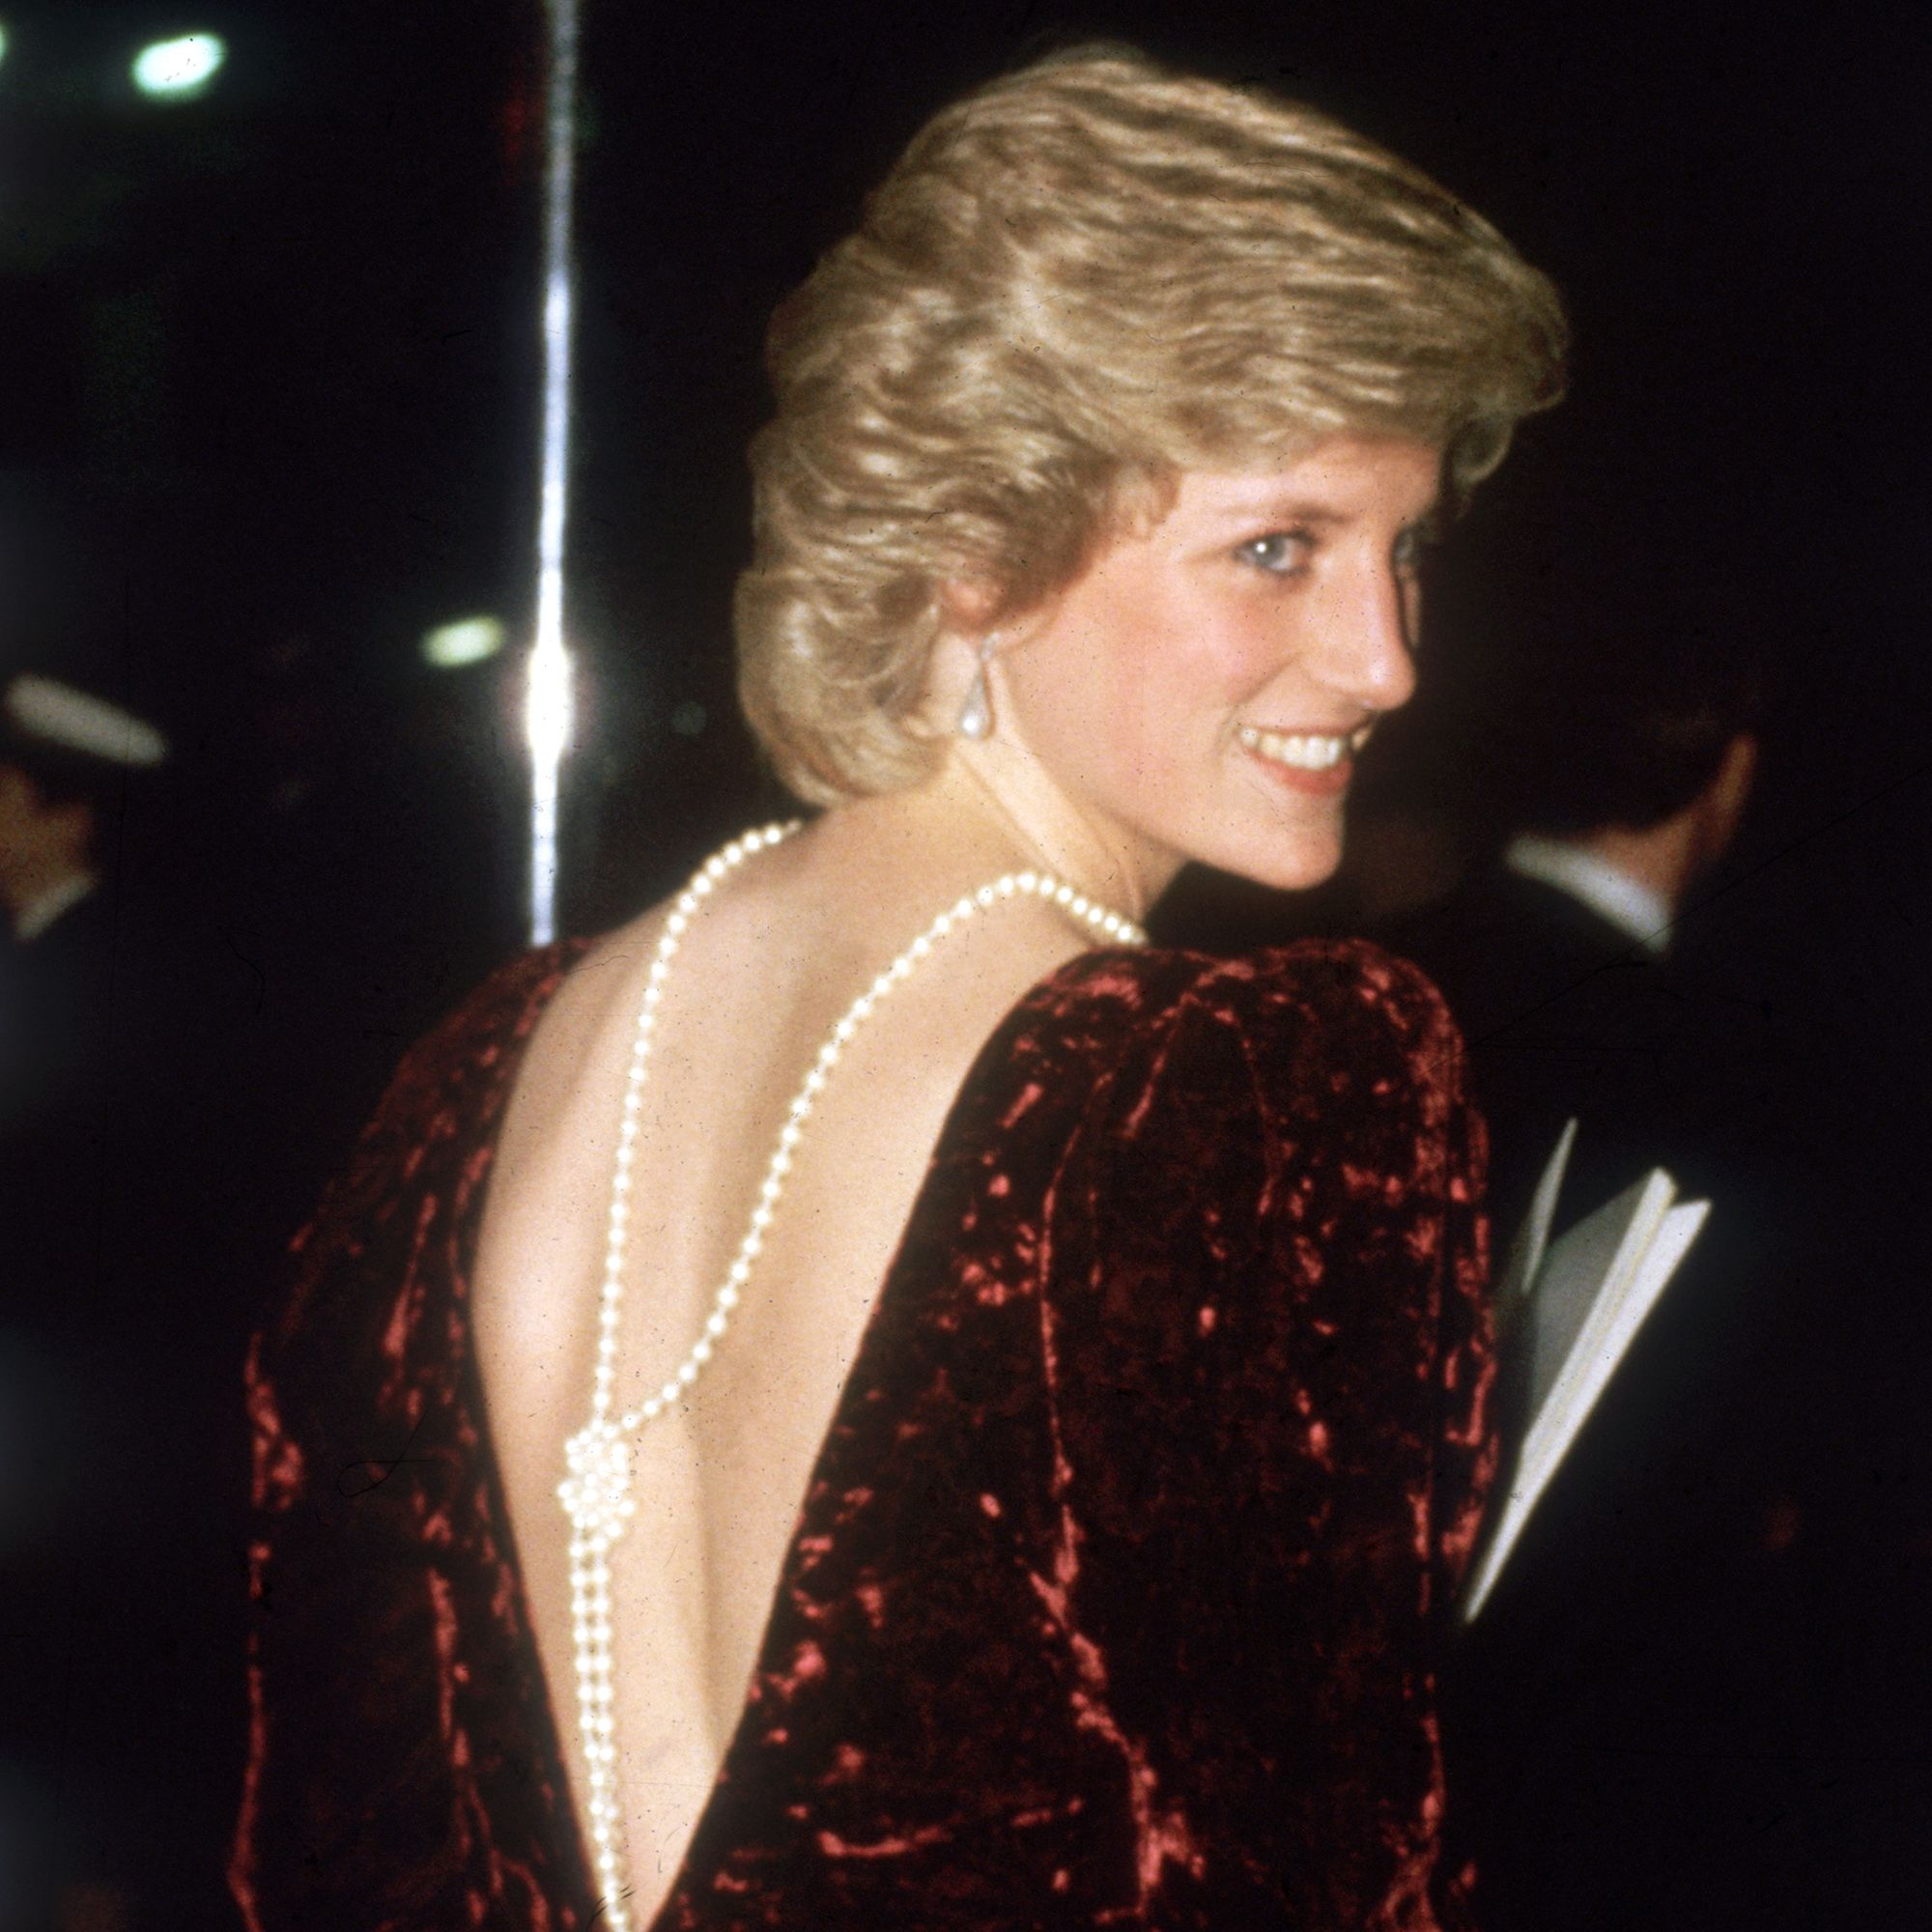 Diana (1961 - 1997), the Princess of Wales, attends the film premiere of 'Back To The Future'.    (Photo by Keystone/Getty Images)